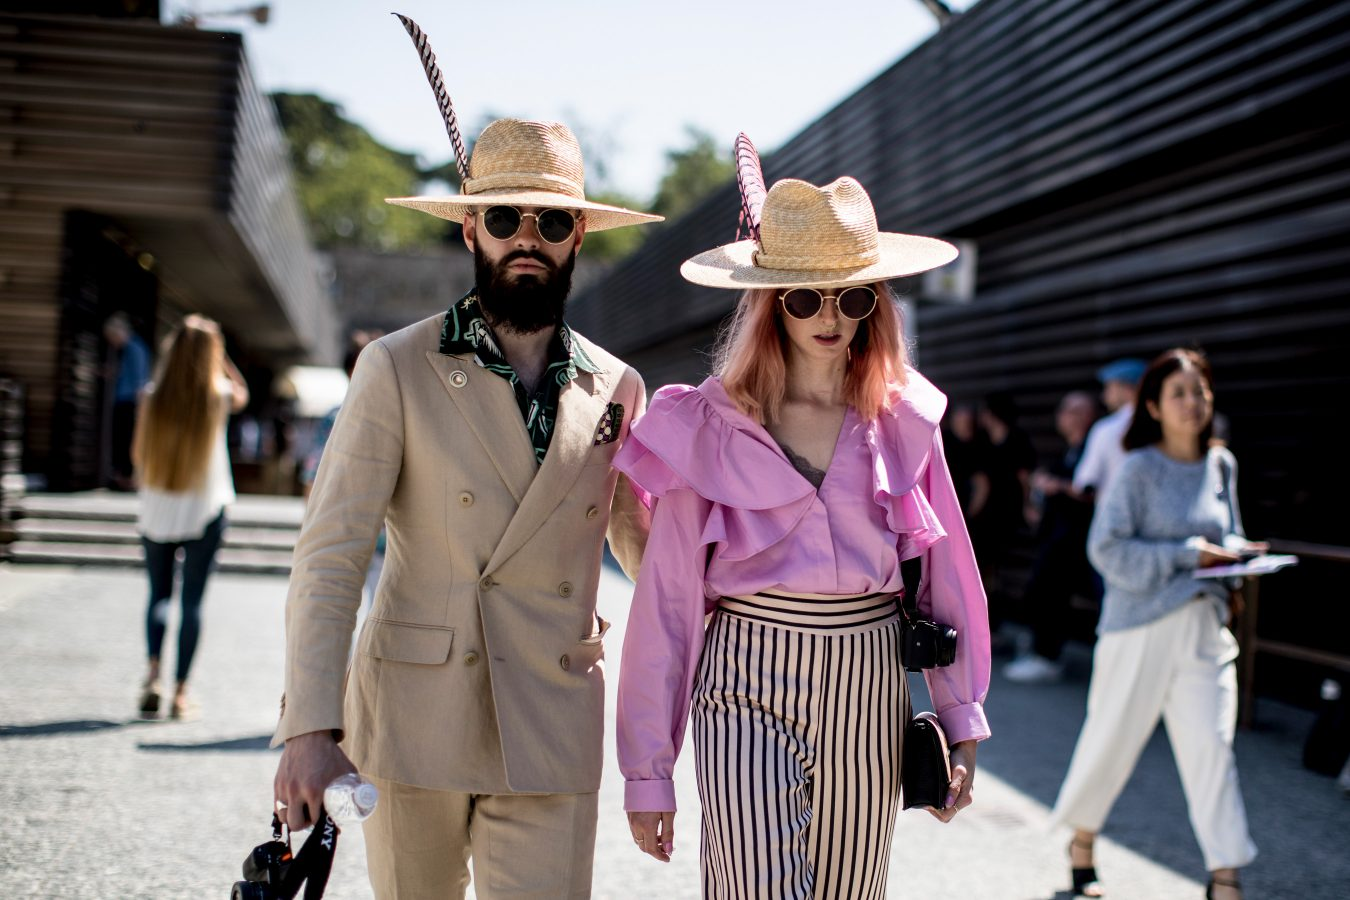 Firenze Pitti Uomo Fashion Week Men's Street Style Spring 2018 Day 3